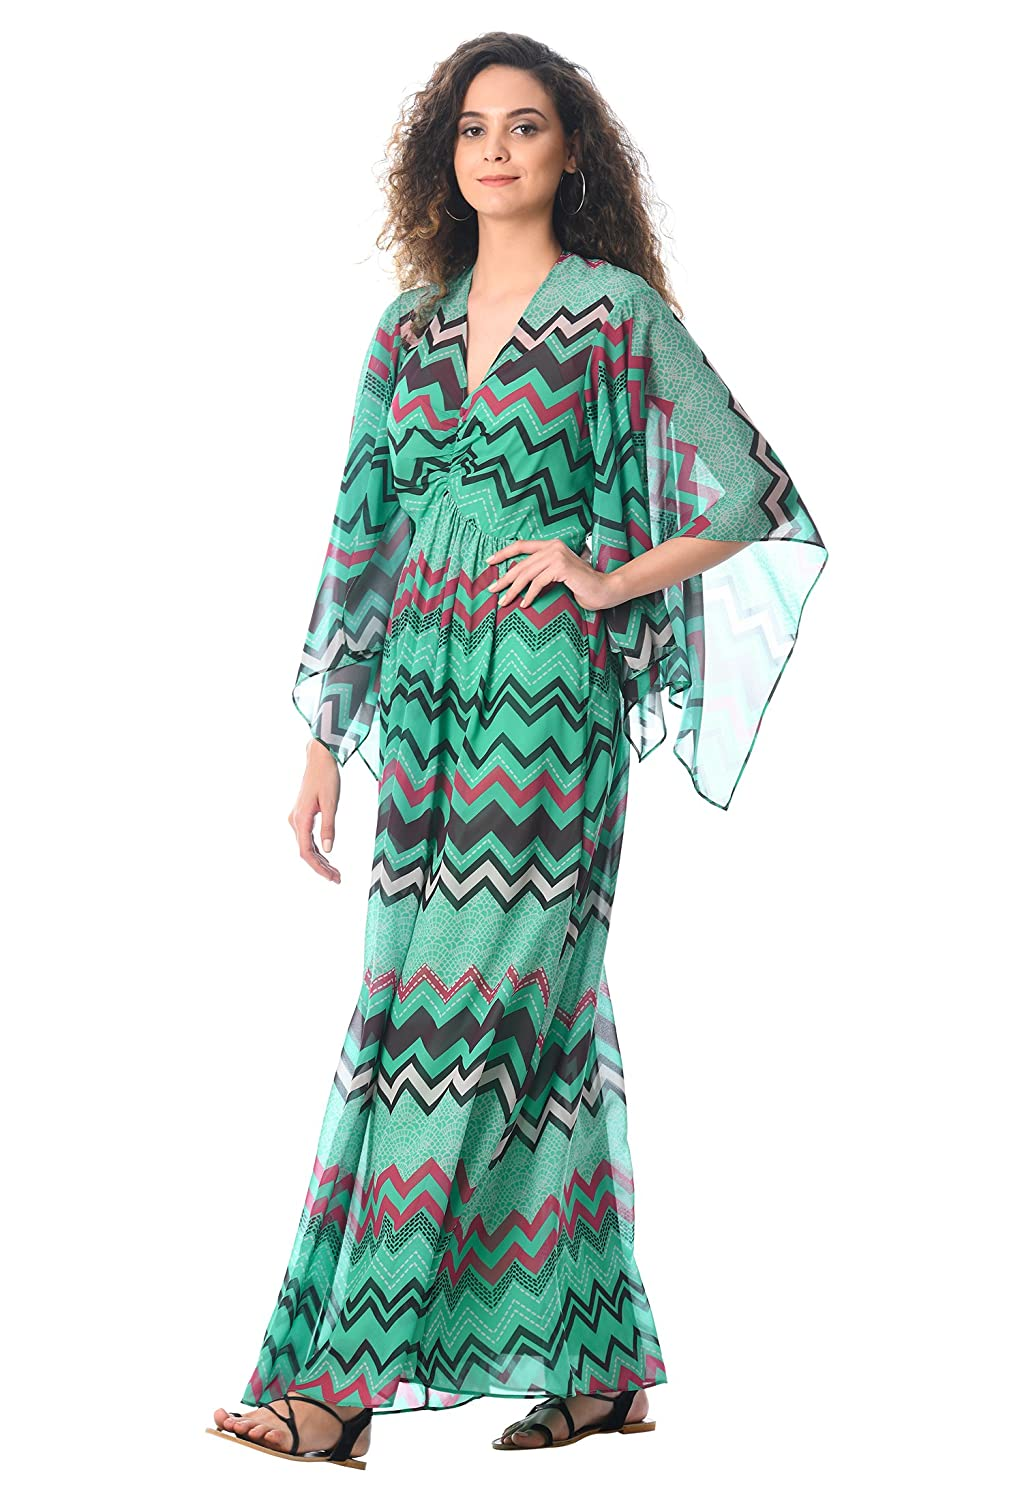 299fa2e5312 Top 10 wholesale Three Quarter Length Sleeve Maxi Dress ...